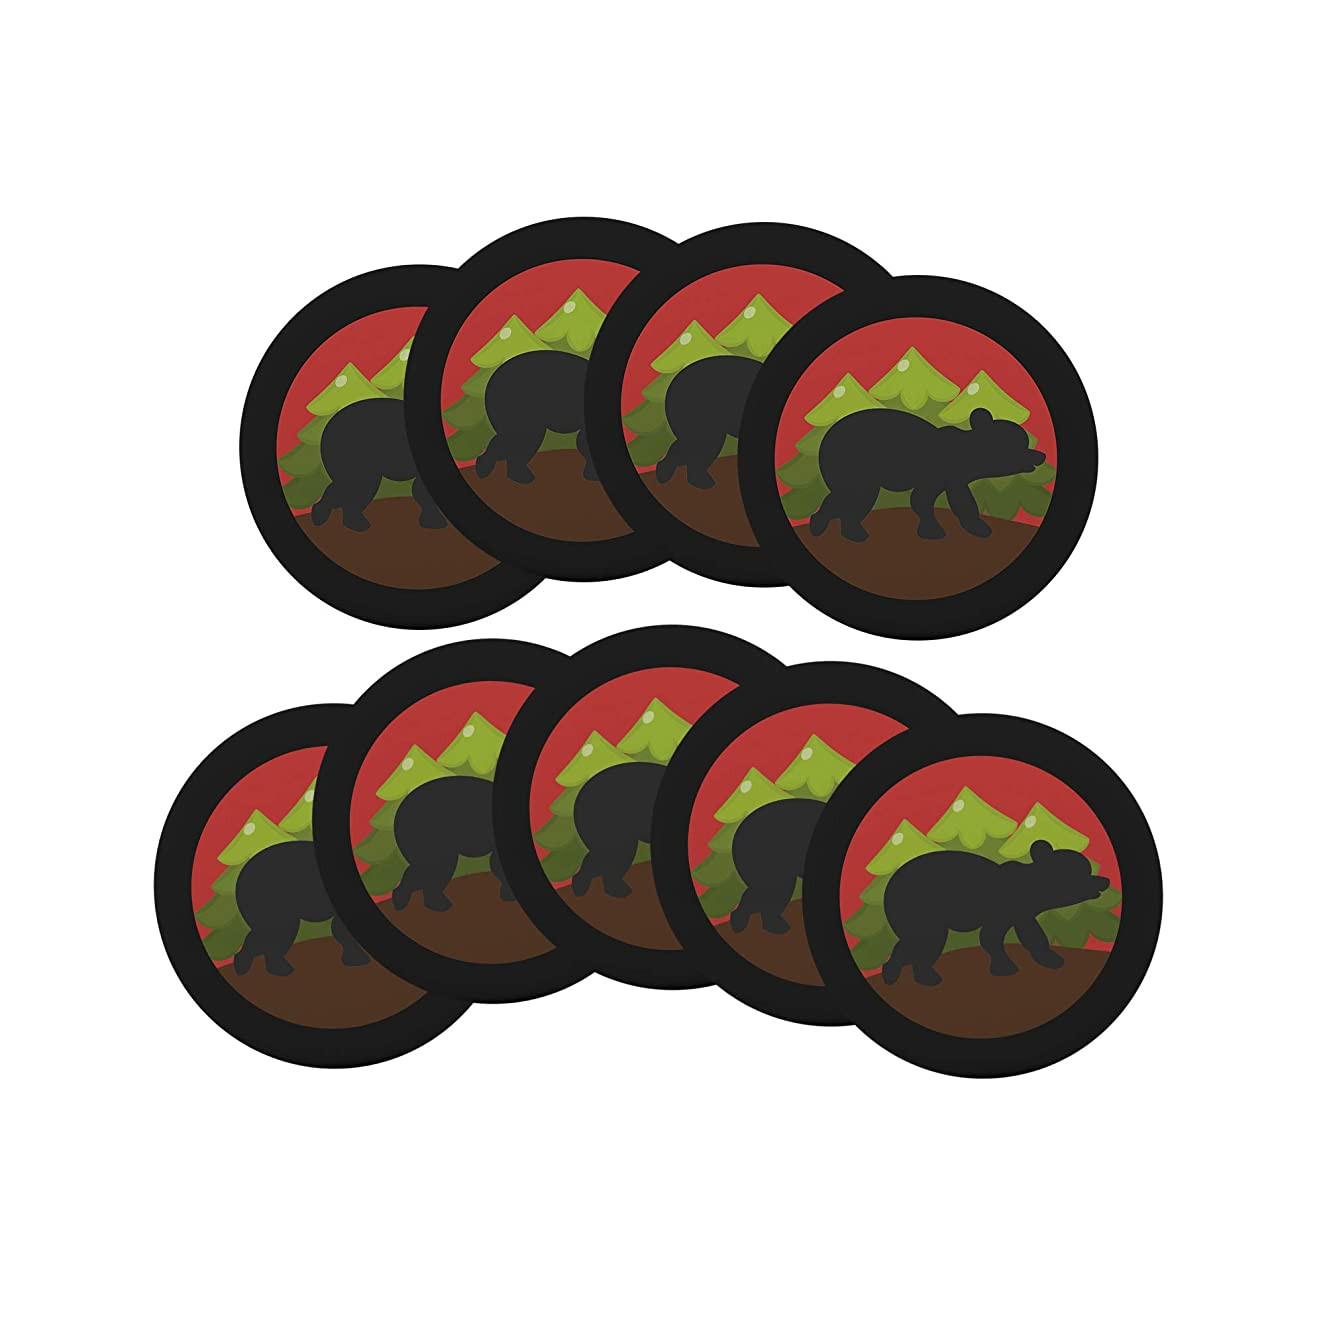 Lumberjack 9-Pack Pin Back Button Birthday Party Favors Supplies Badge 2.25-inch Round Boy Girl